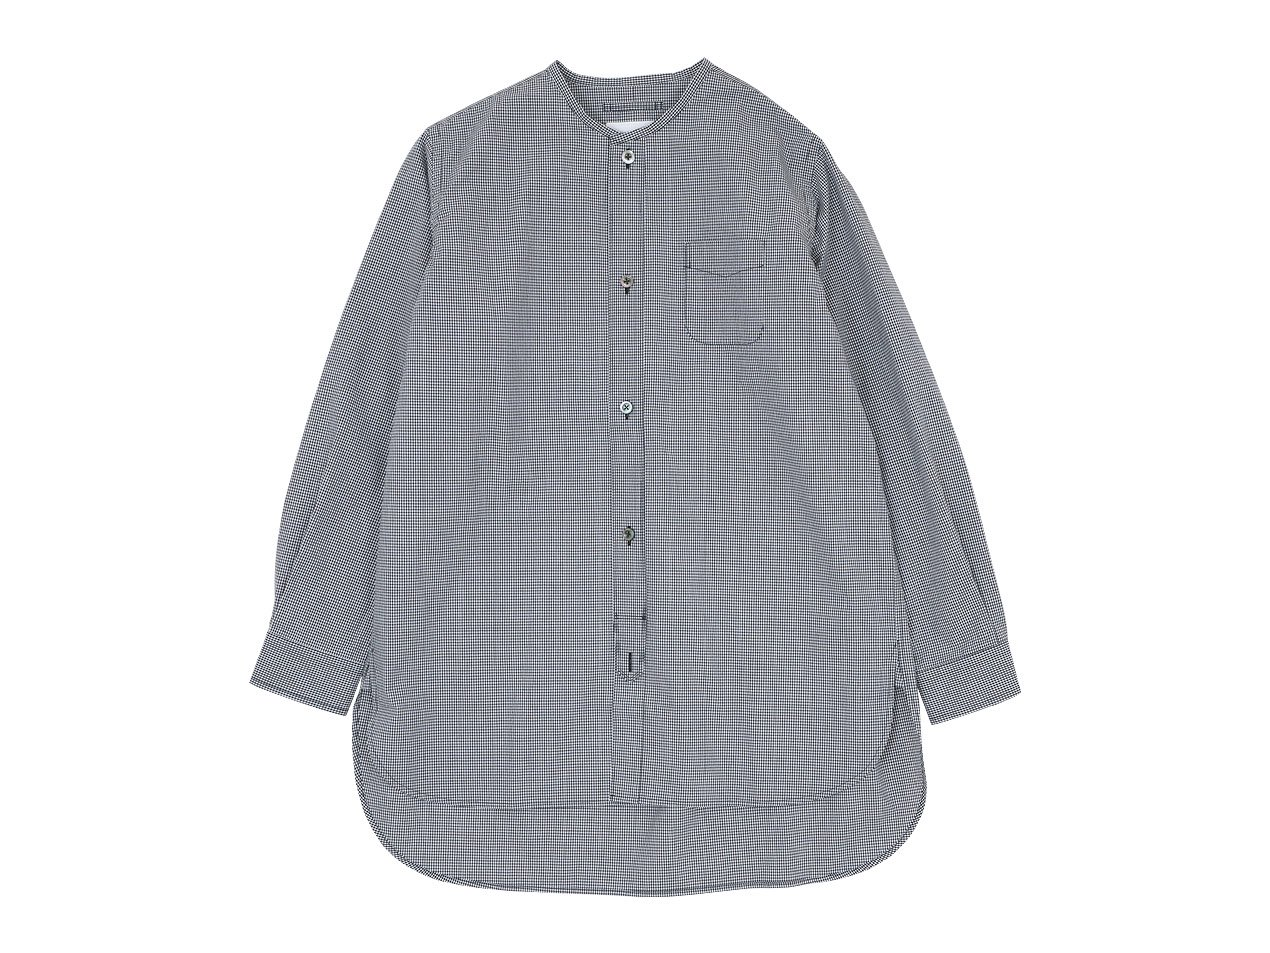 blanc no collar long shirts cotton MONOTONE GINGAM